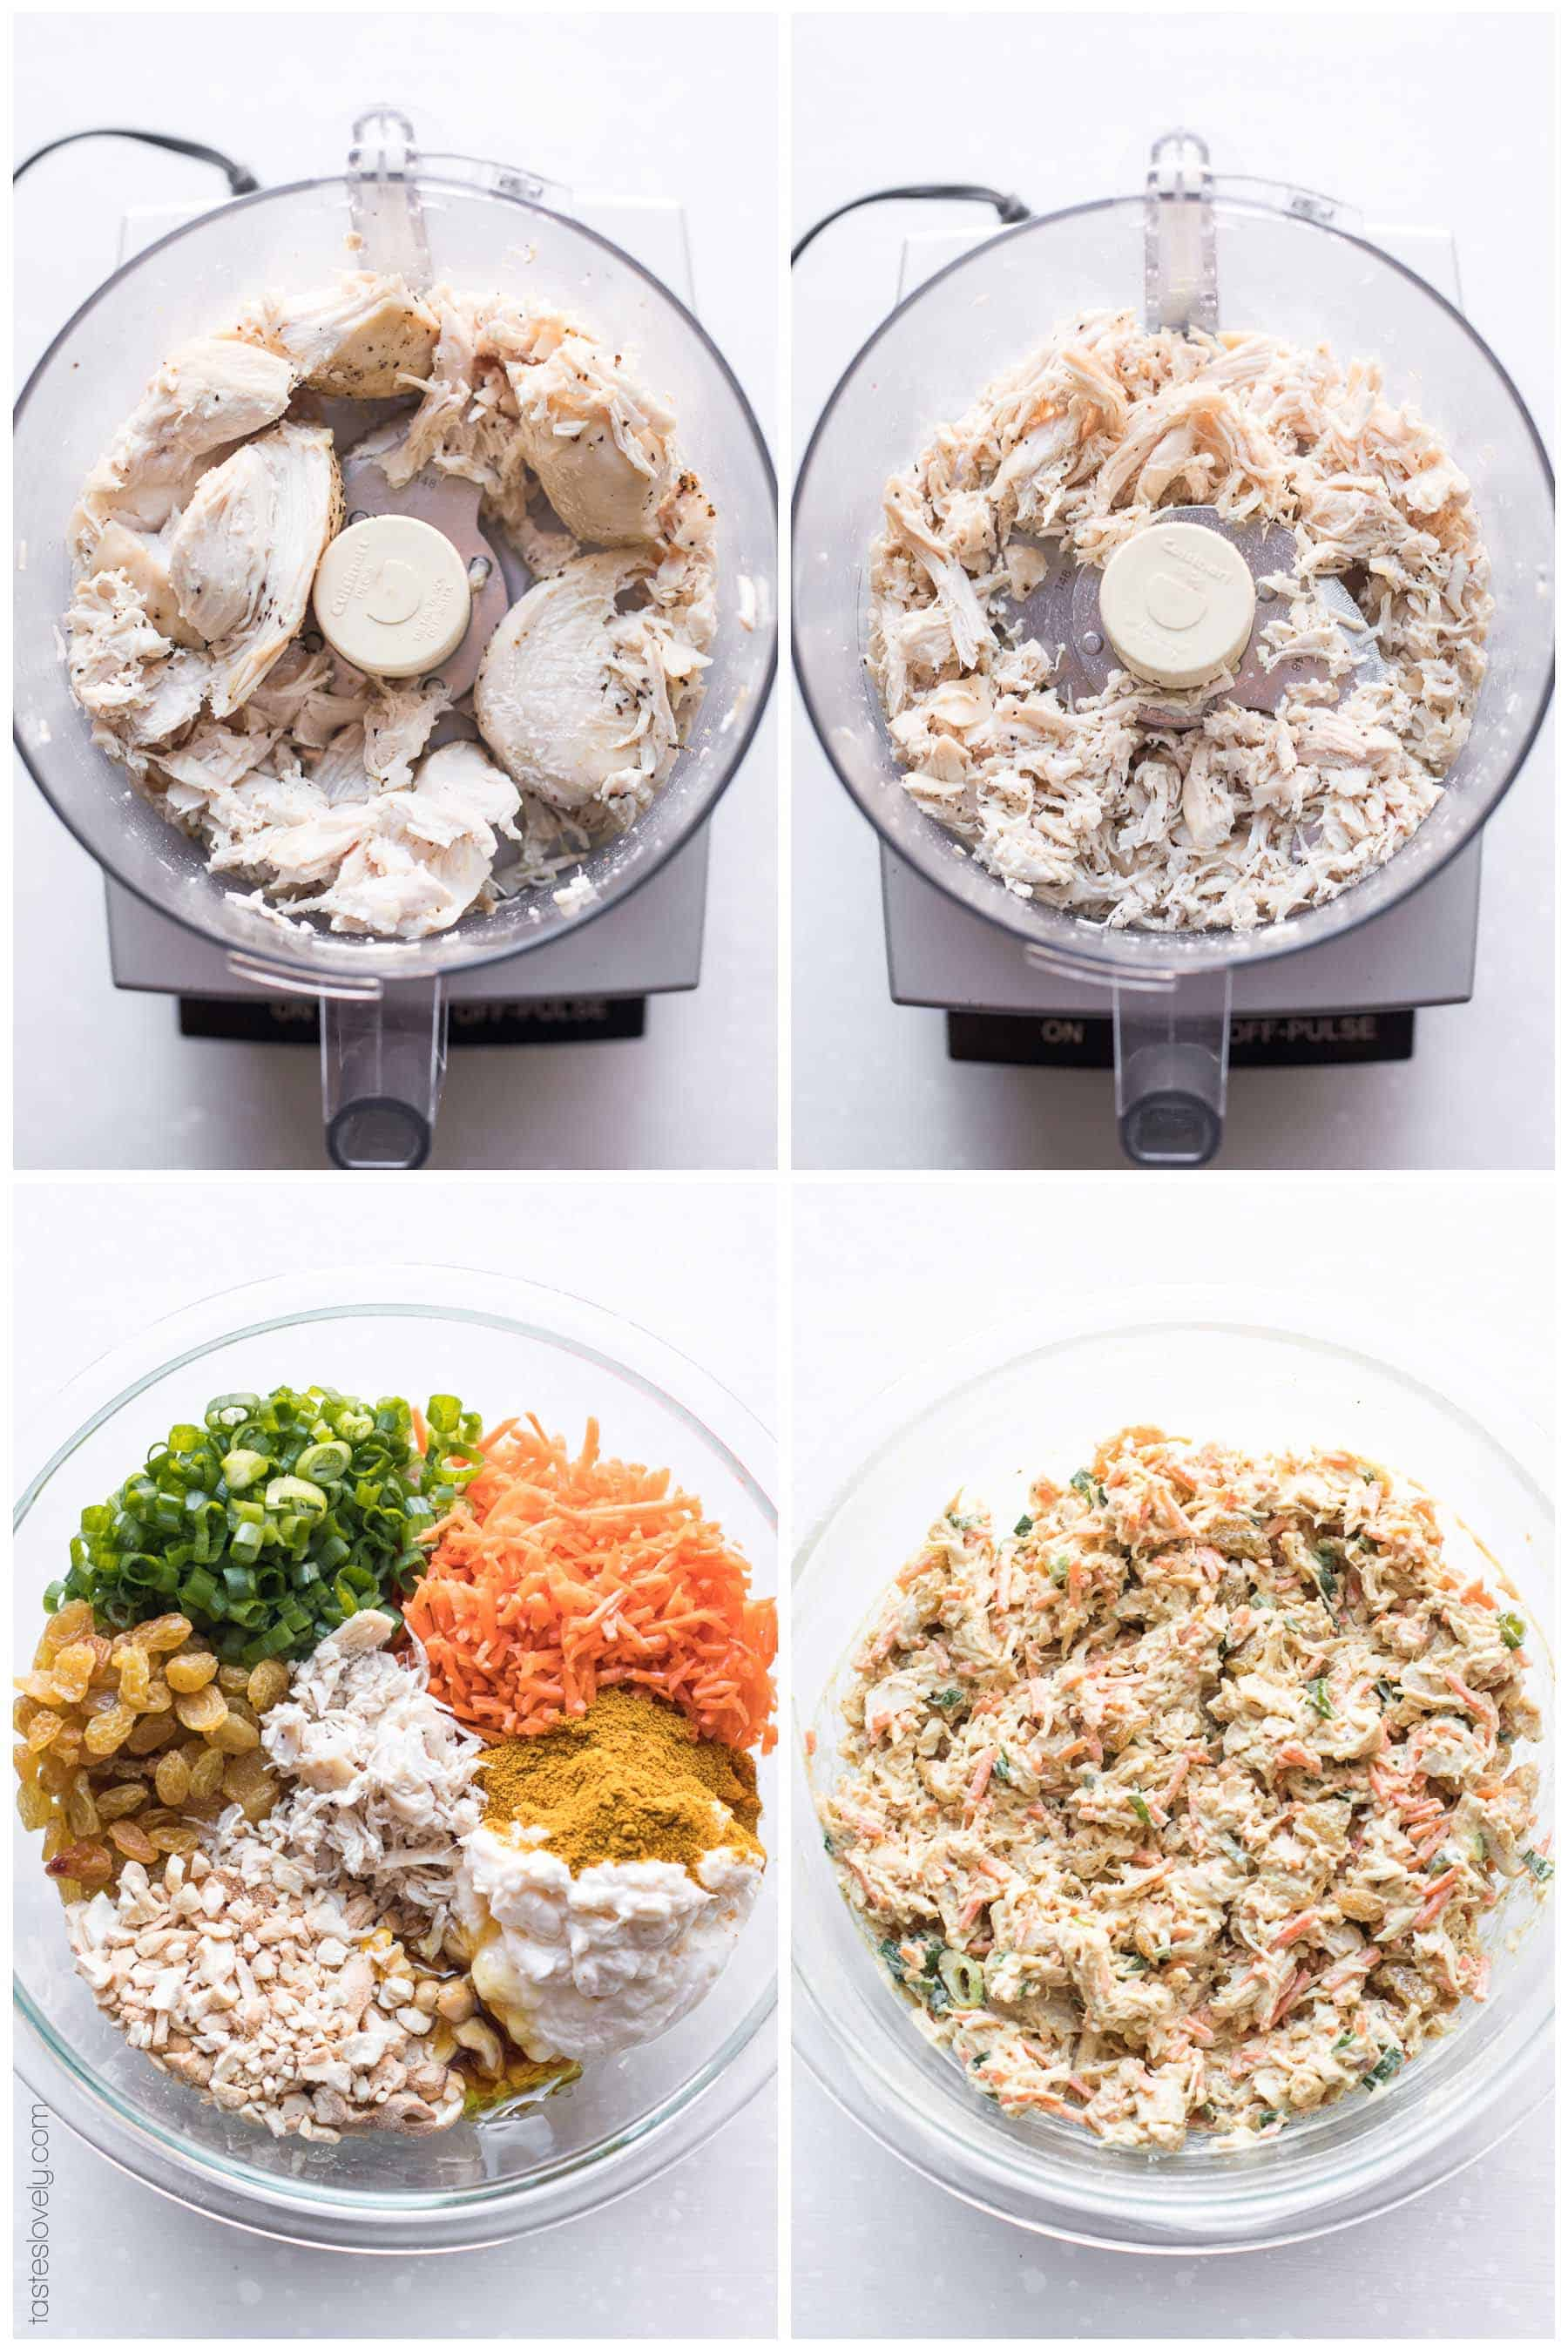 Curried Chicken Salad with Cashews (Paleo, Whole30, Gluten Free, Dairy Free, Refined Sugar Free)